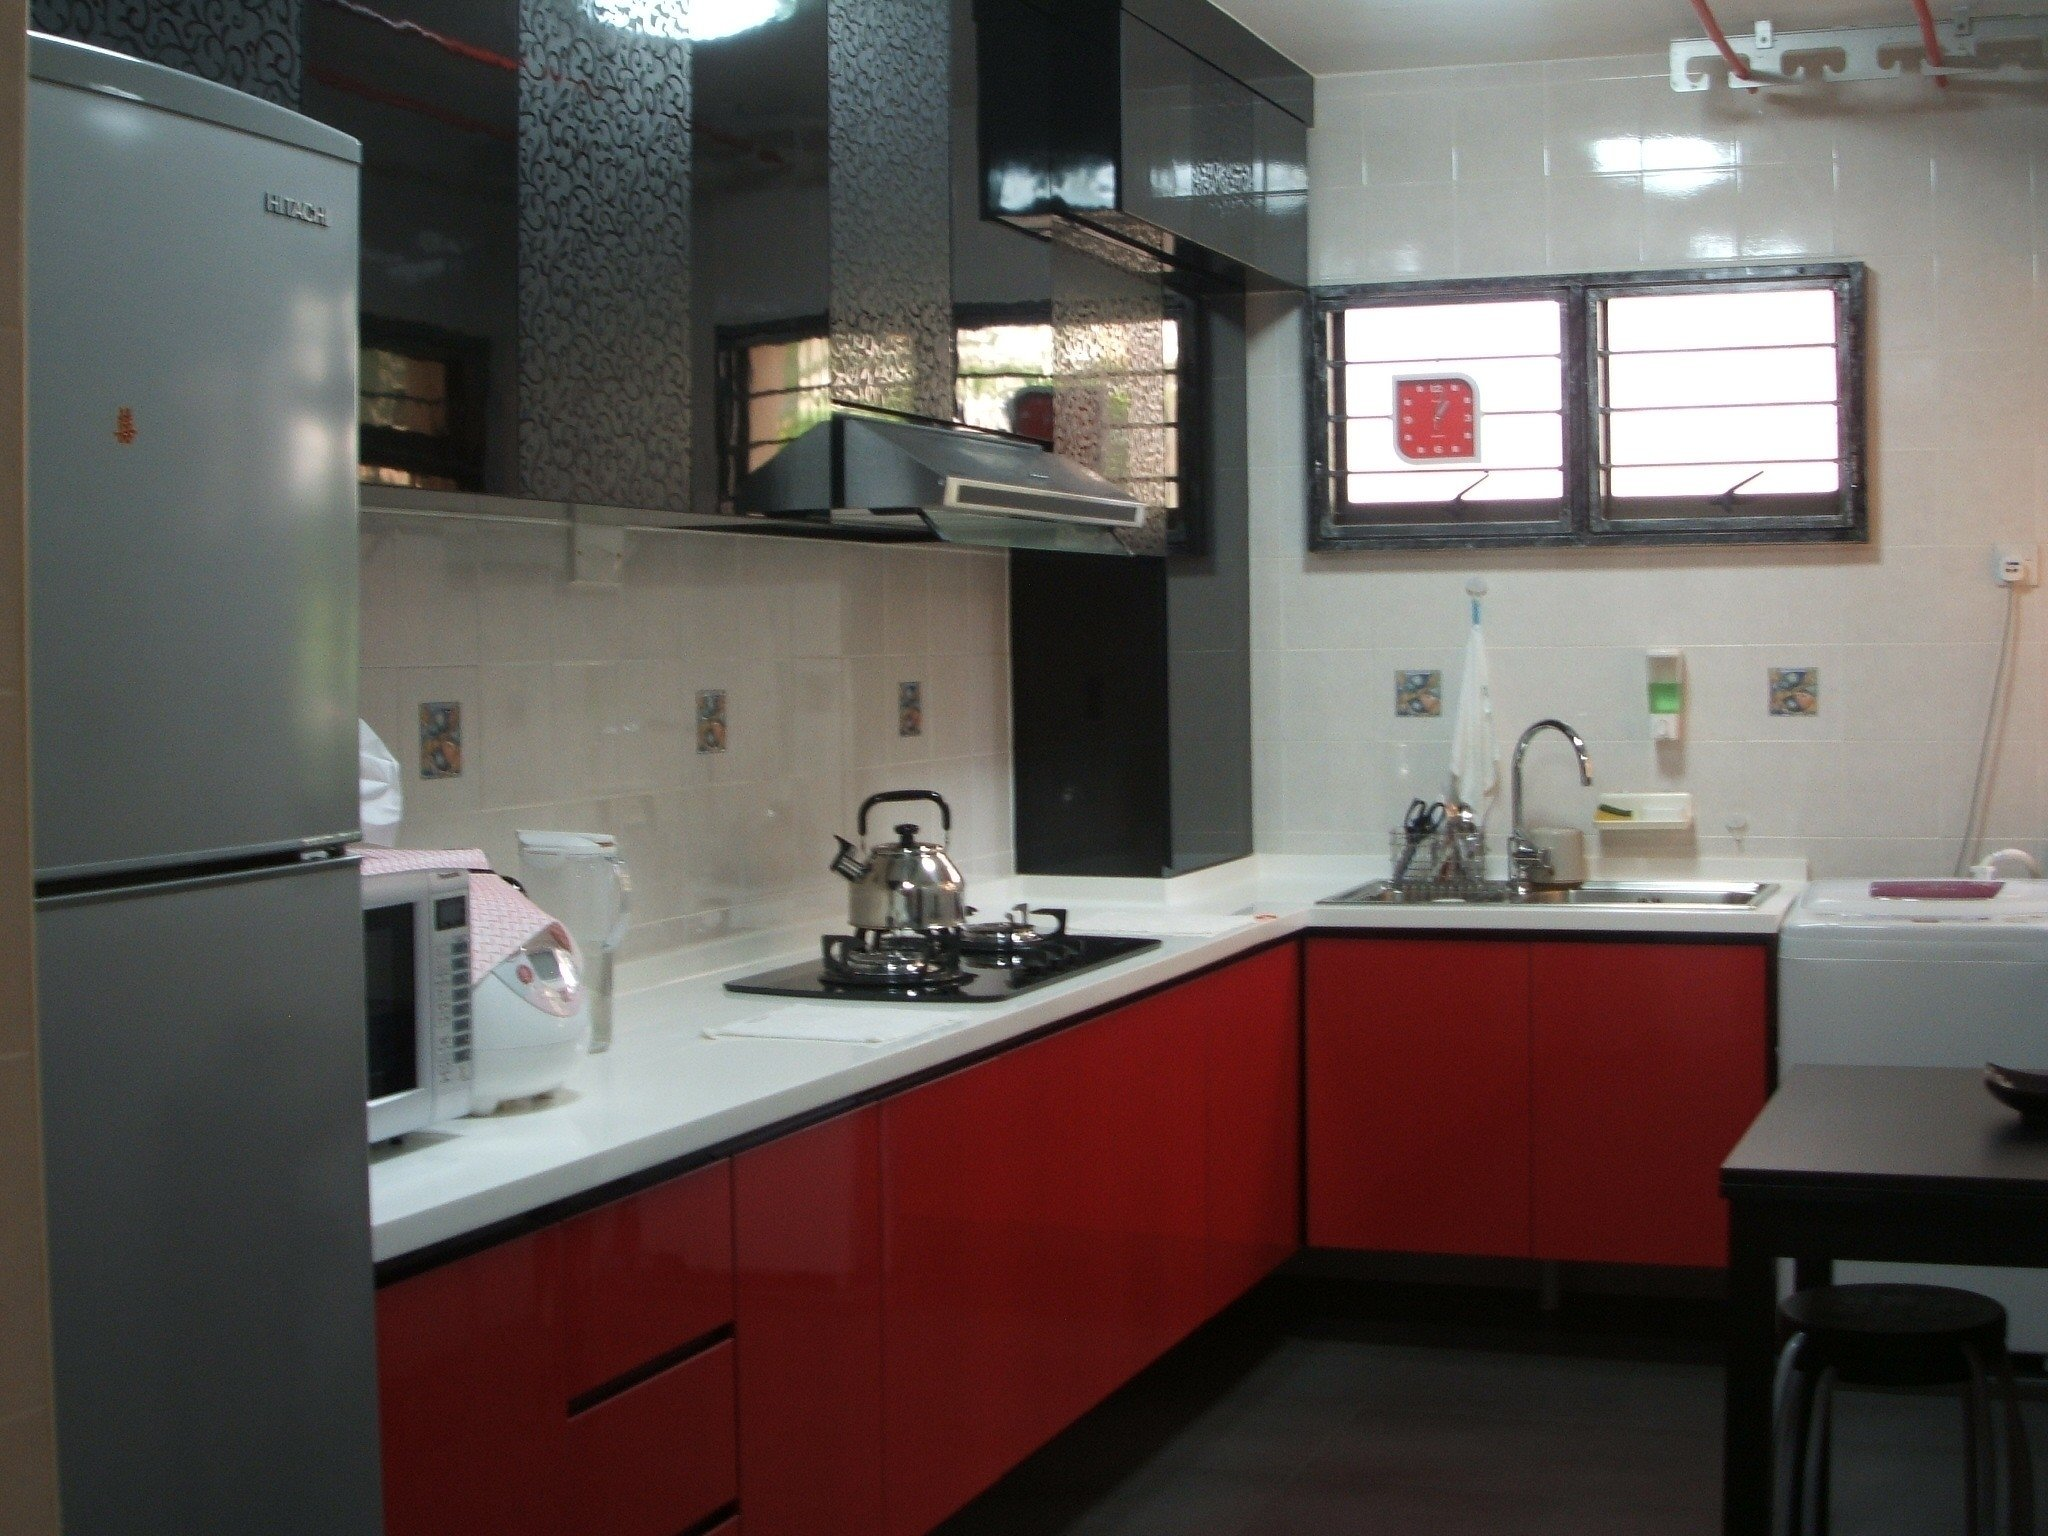 10 Attractive Red And Black Kitchen Ideas black and red kitchen designs lovely kitchen simple cool amusing red 2021